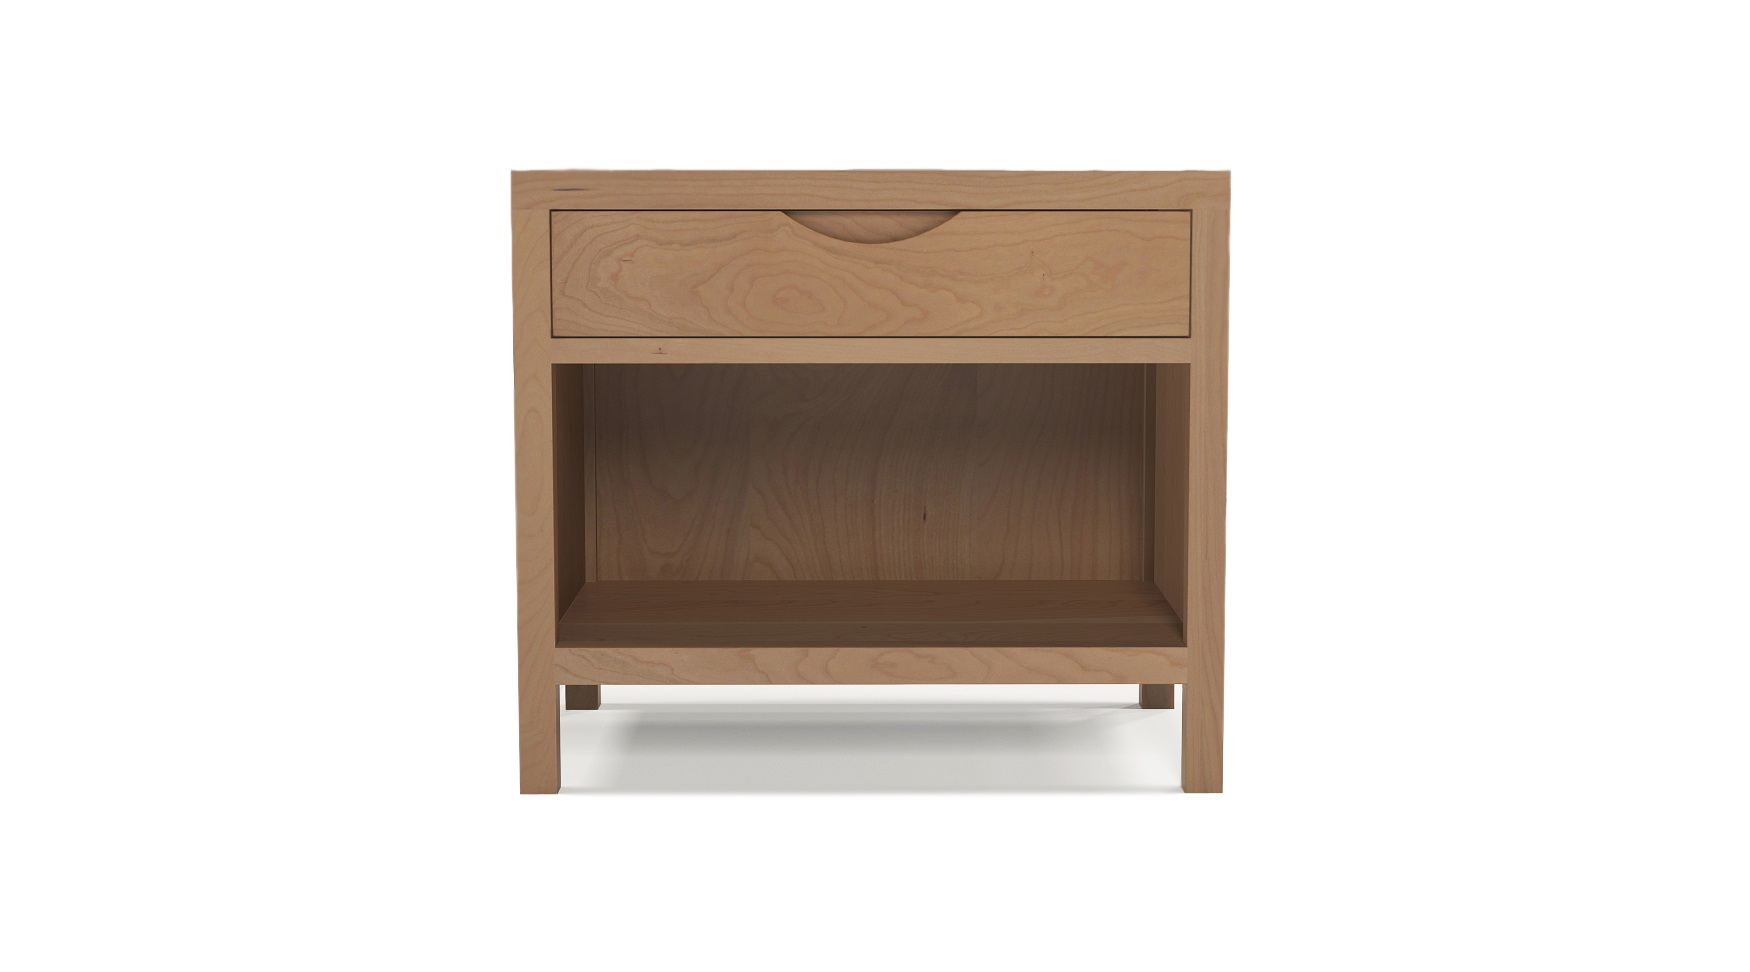 Cherry wood luxury furniture large bedside table with integrated wood handles